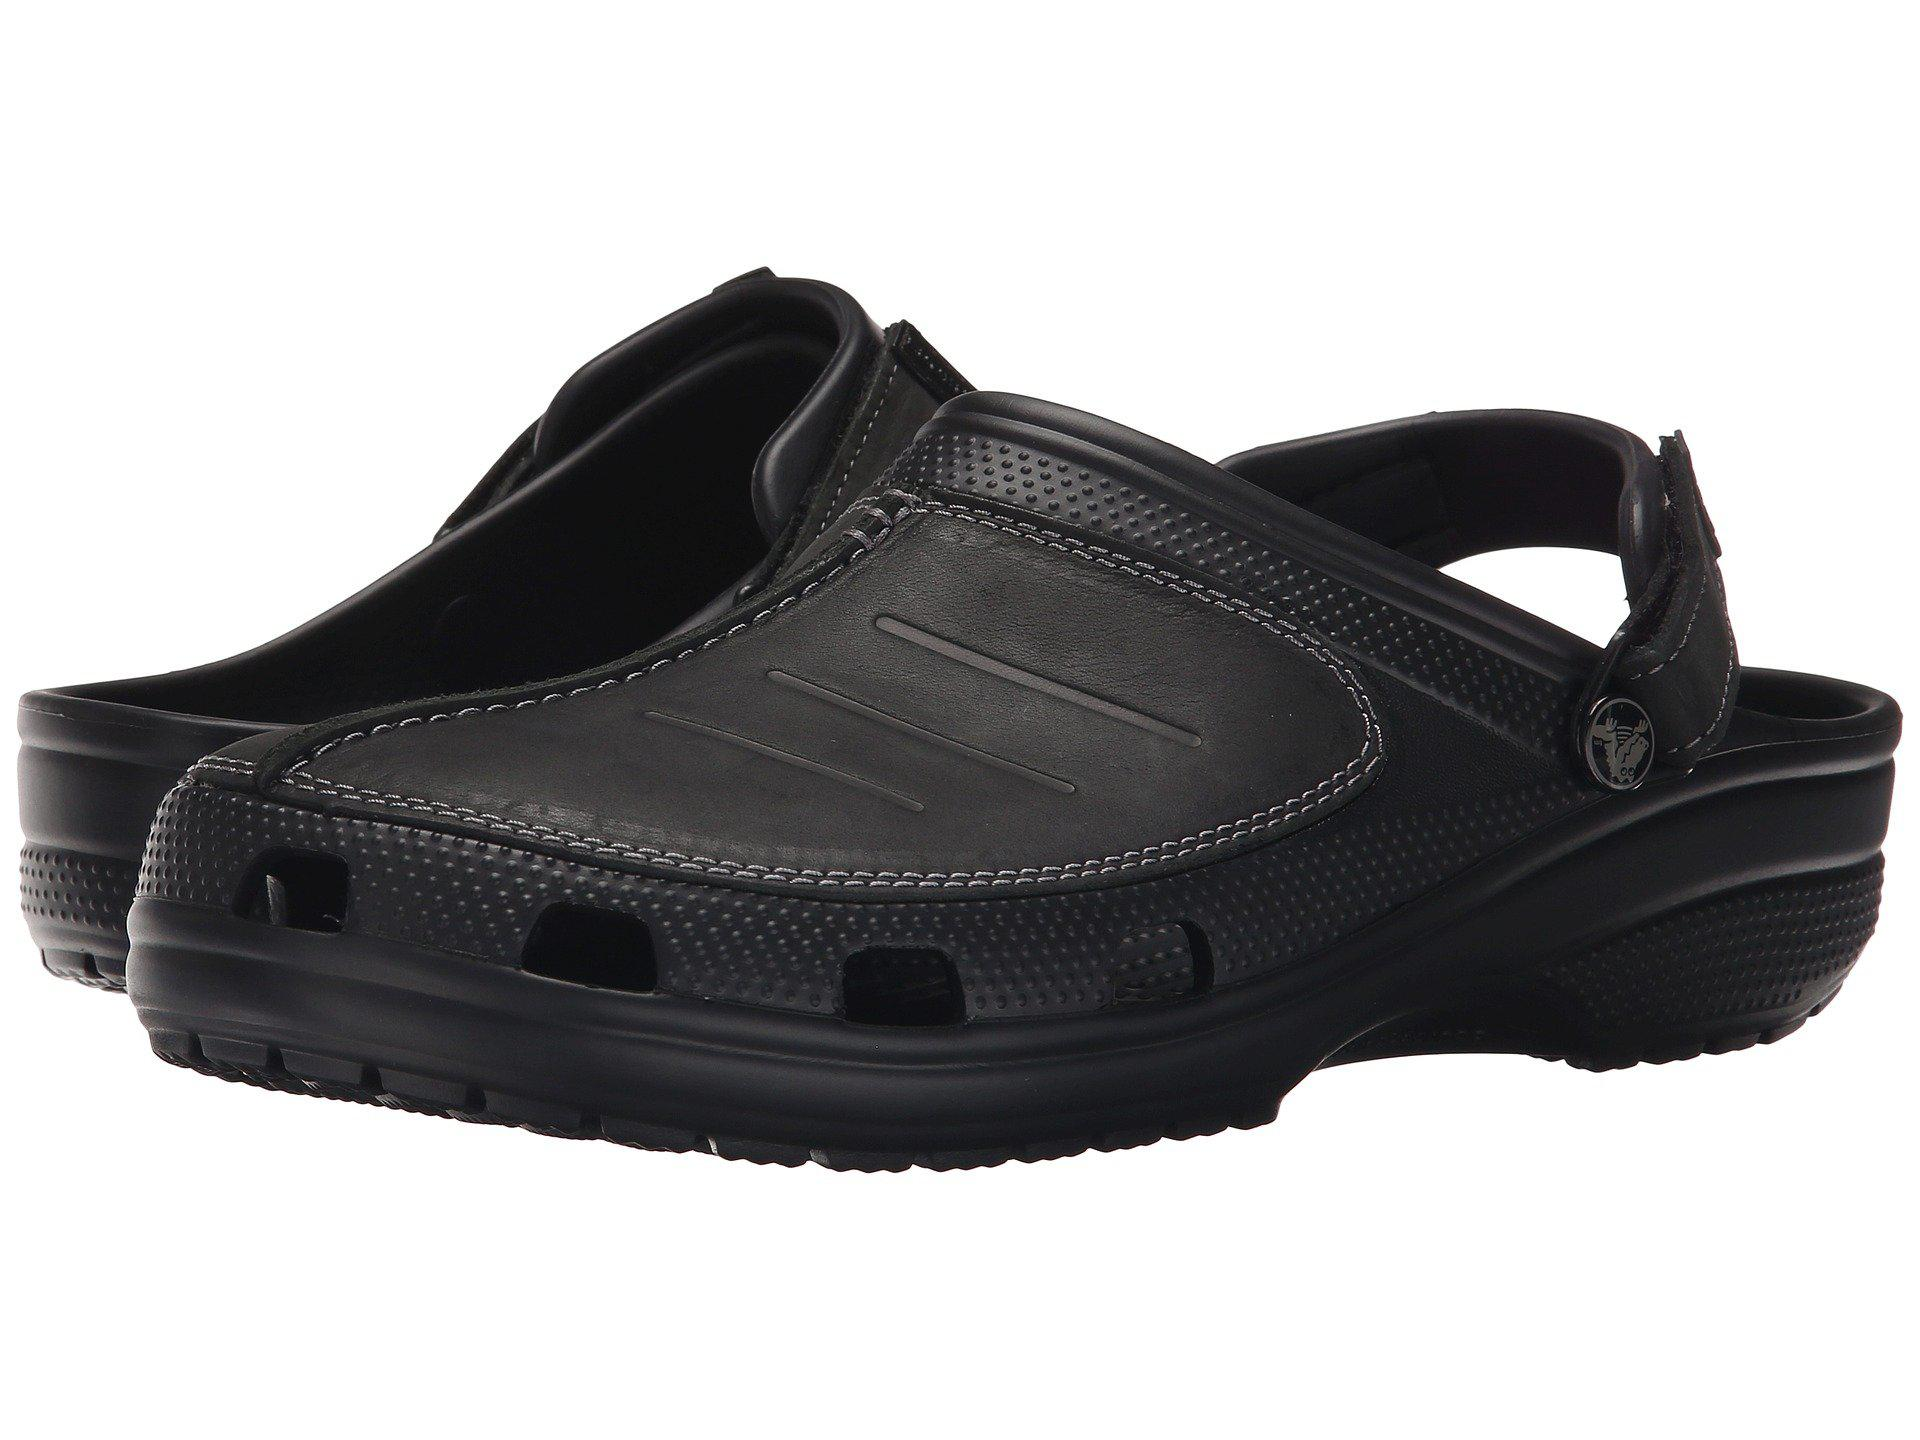 b178747c1 Lyst - Crocs™ Yukon Mesa Clog in Black for Men